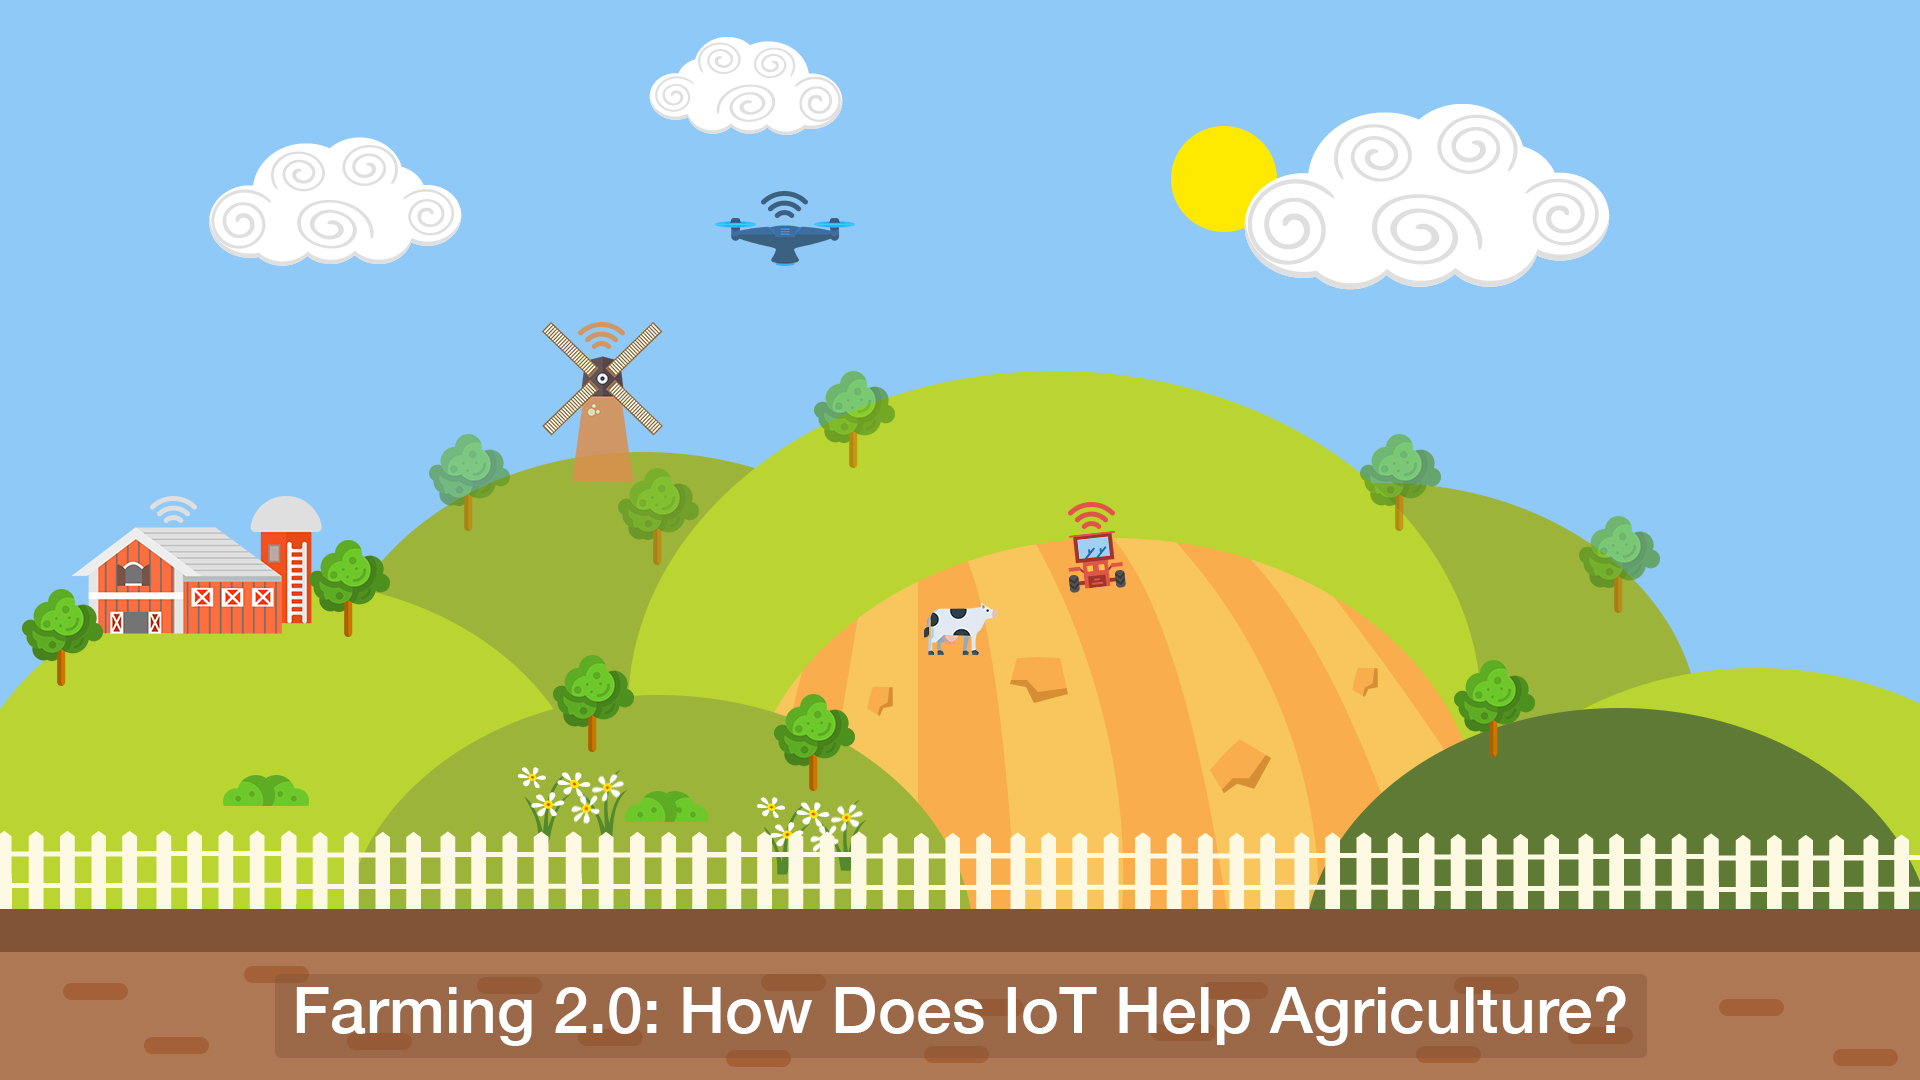 Role of IoT in smart agriculture